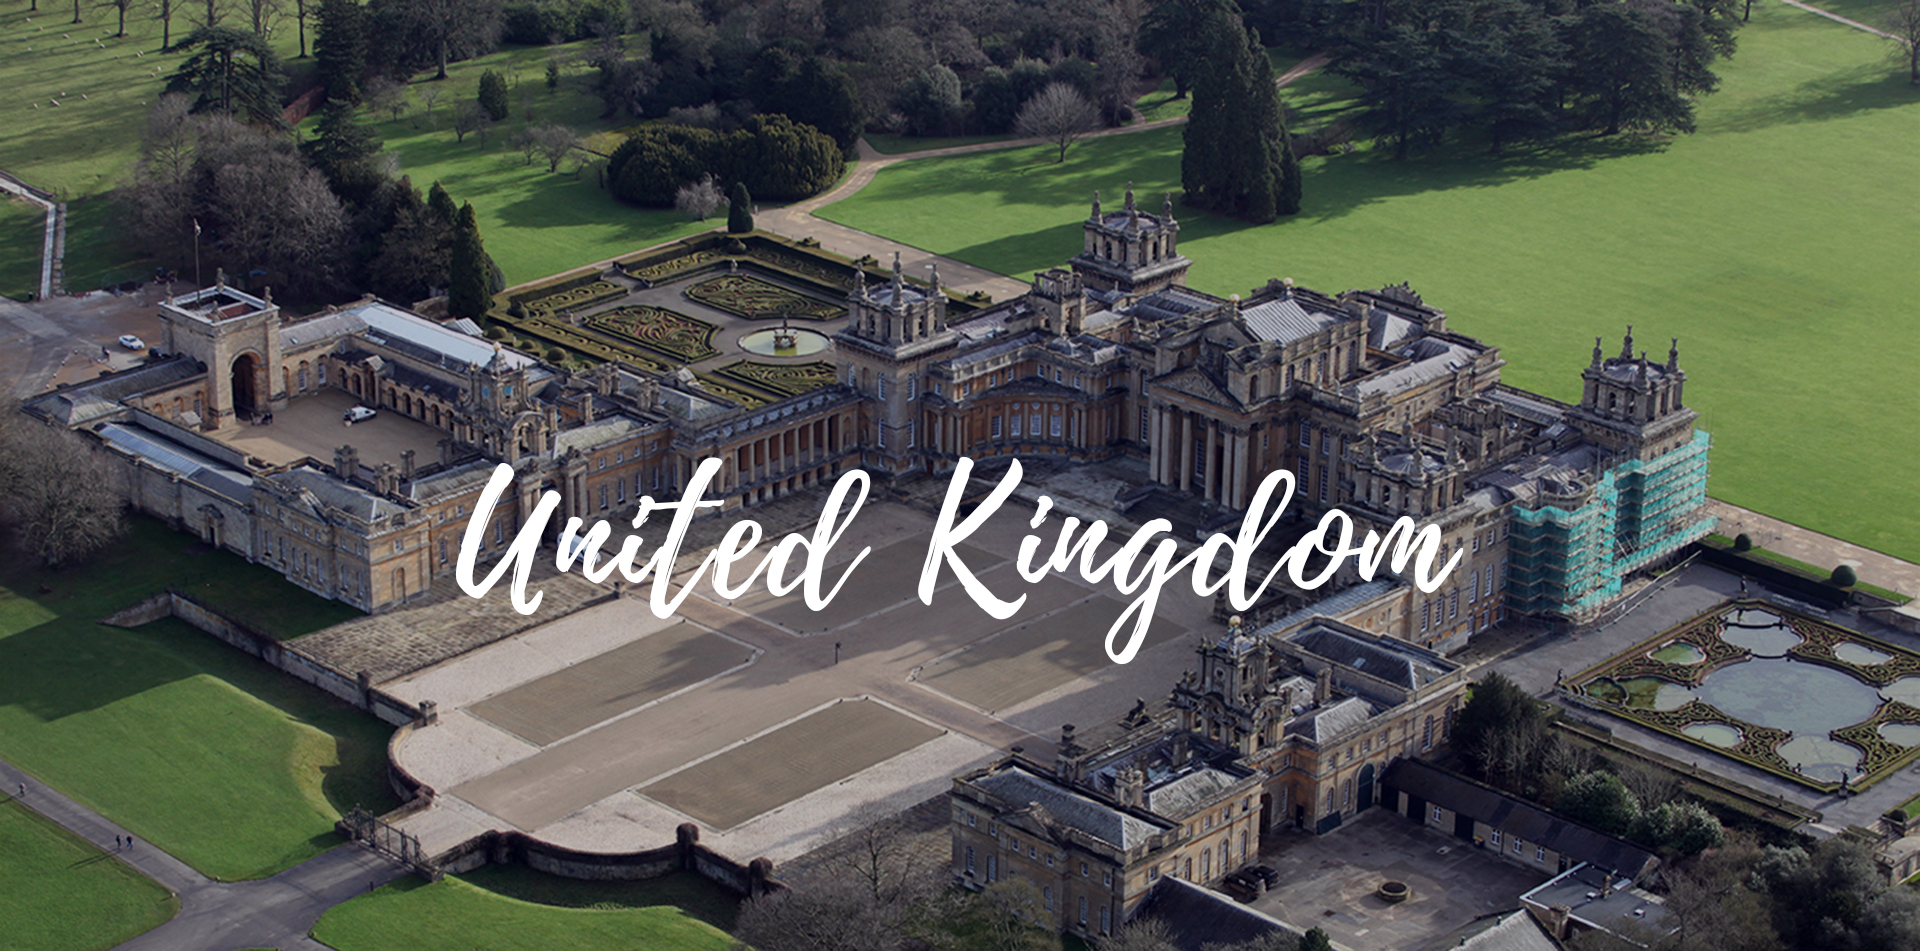 Europe United Kingdom England Cotswolds green meadows Blenheim Palace rolling hills - luxury vacation destinations